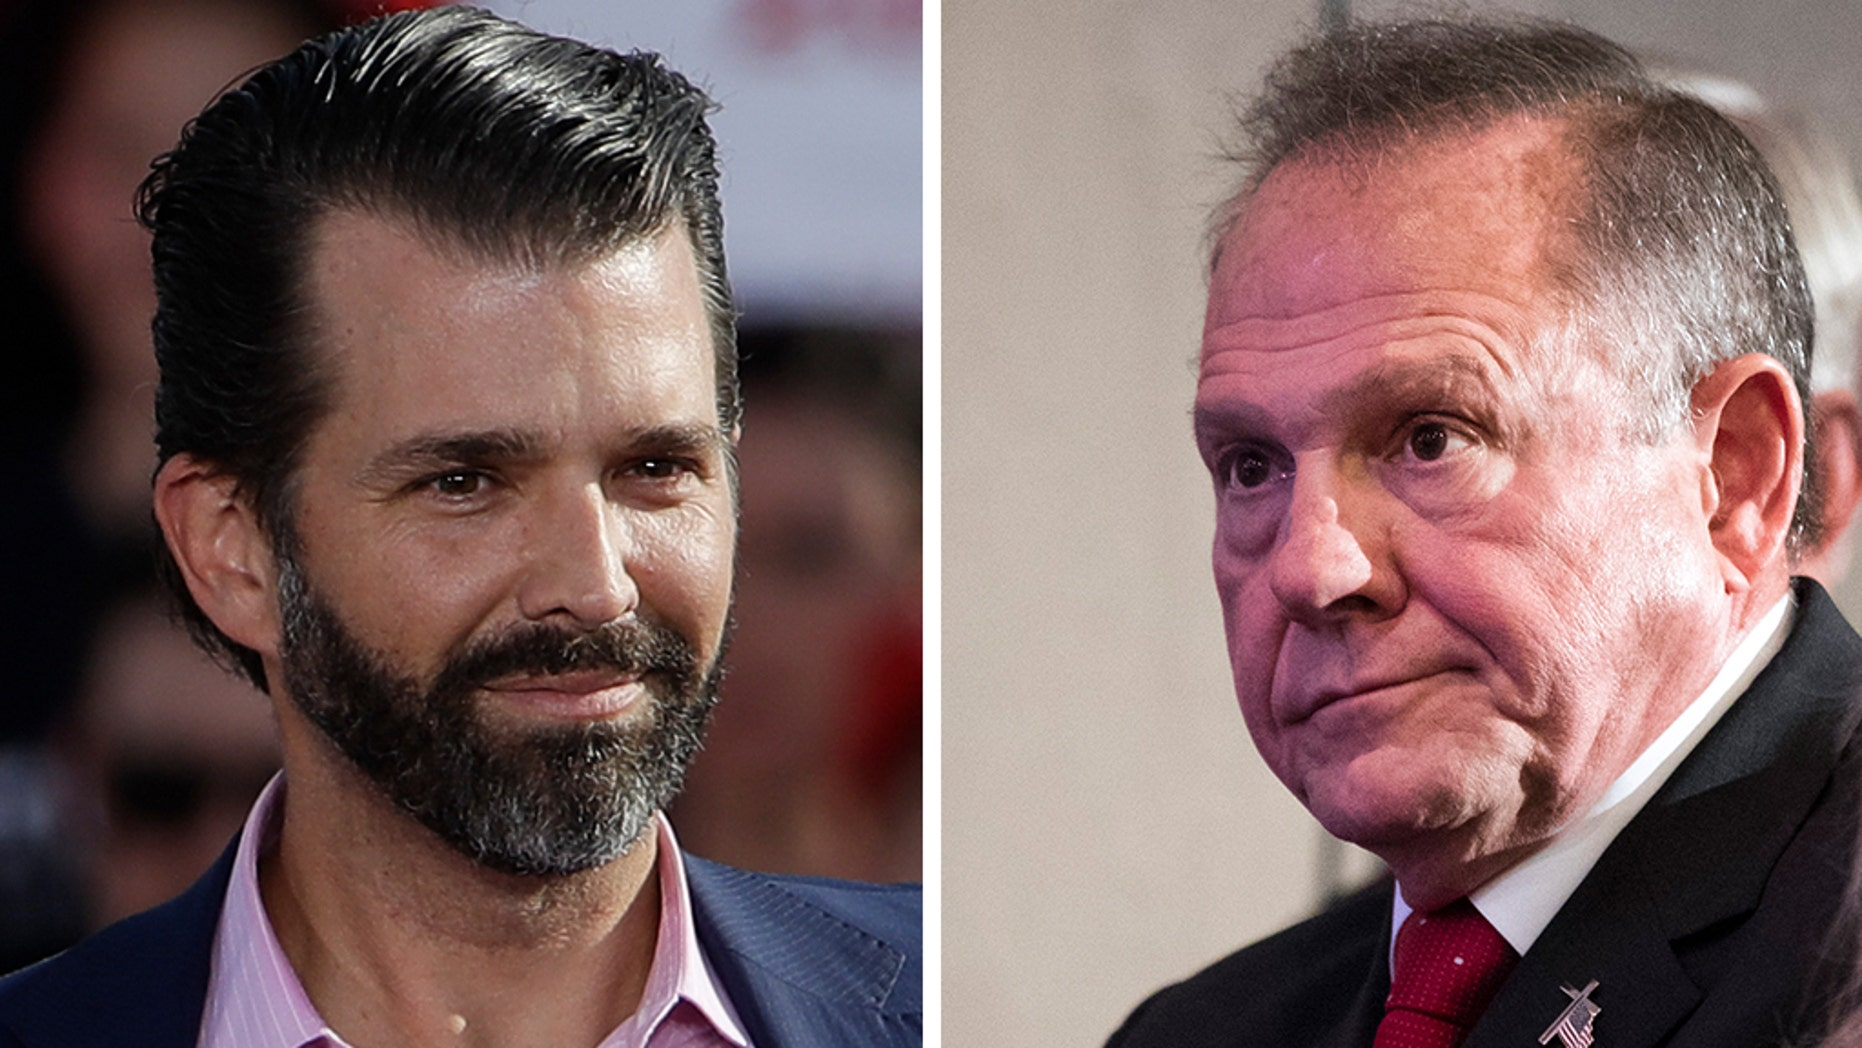 """<a data-cke-saved-href=""""https://www.foxnews.com/category/politics/executive/first-family"""" href=""""https://www.foxnews.com/category/politics/executive/first-family"""">Donald Trump Jr.</a> slammed Judge Roy Moore as the previously failed candidate<a data-cke-saved-href=""""https://www.foxnews.com/us/roy-moore-weighs-al-senate-re-run-despite-gop-opposition"""" href=""""https://www.foxnews.com/us/roy-moore-weighs-al-senate-re-run-despite-gop-opposition"""">teased another run for the Alabama Senate seat</a>."""